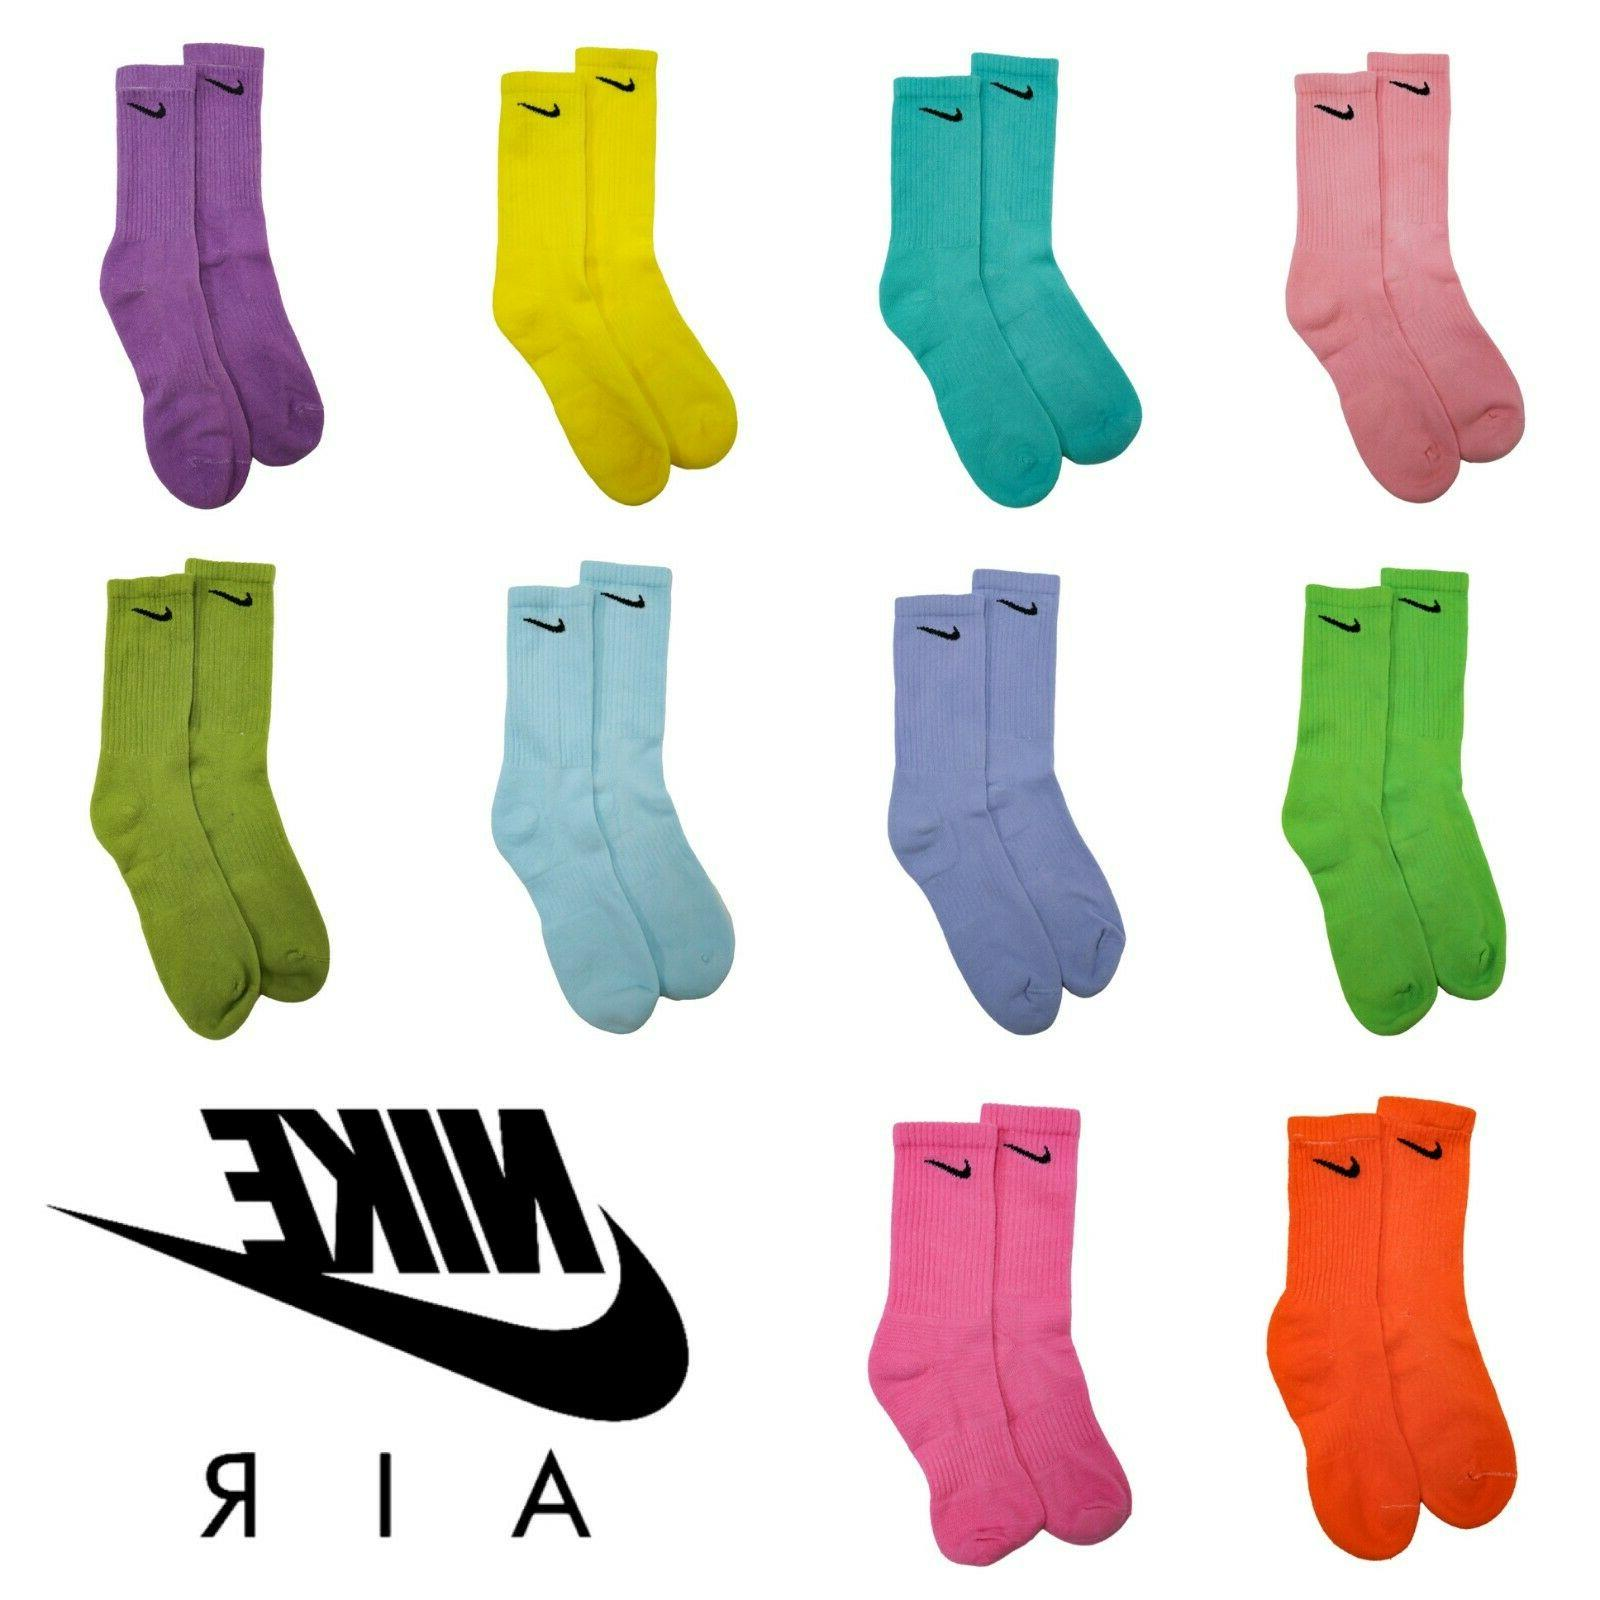 Official Nike Everyday Socks - Bold Color Series - Authentic